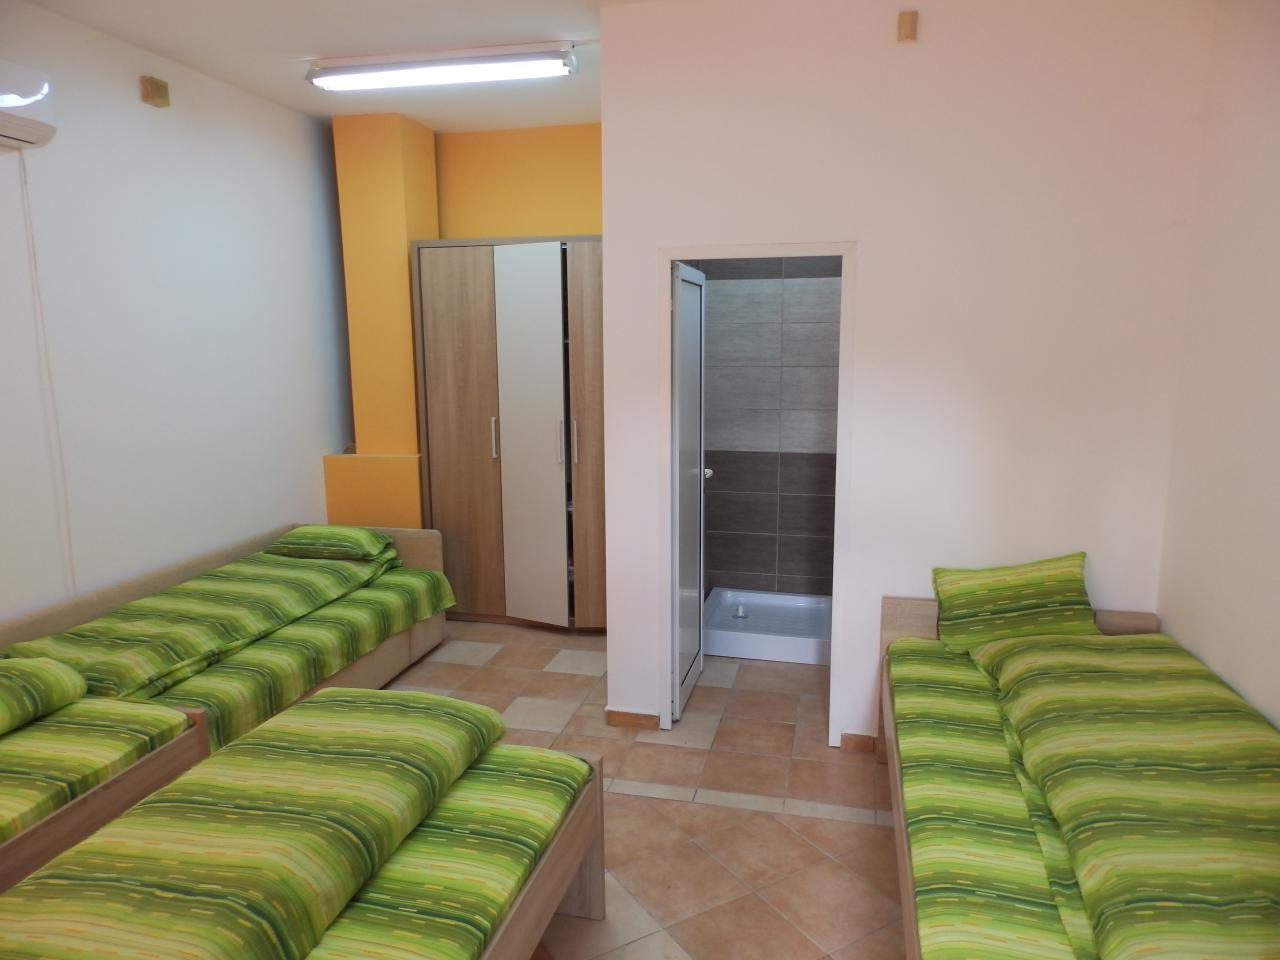 ROOMS FOR RENT - SPORT HOUSE KOD CAKINA Accommodation Sabac - Photo 1